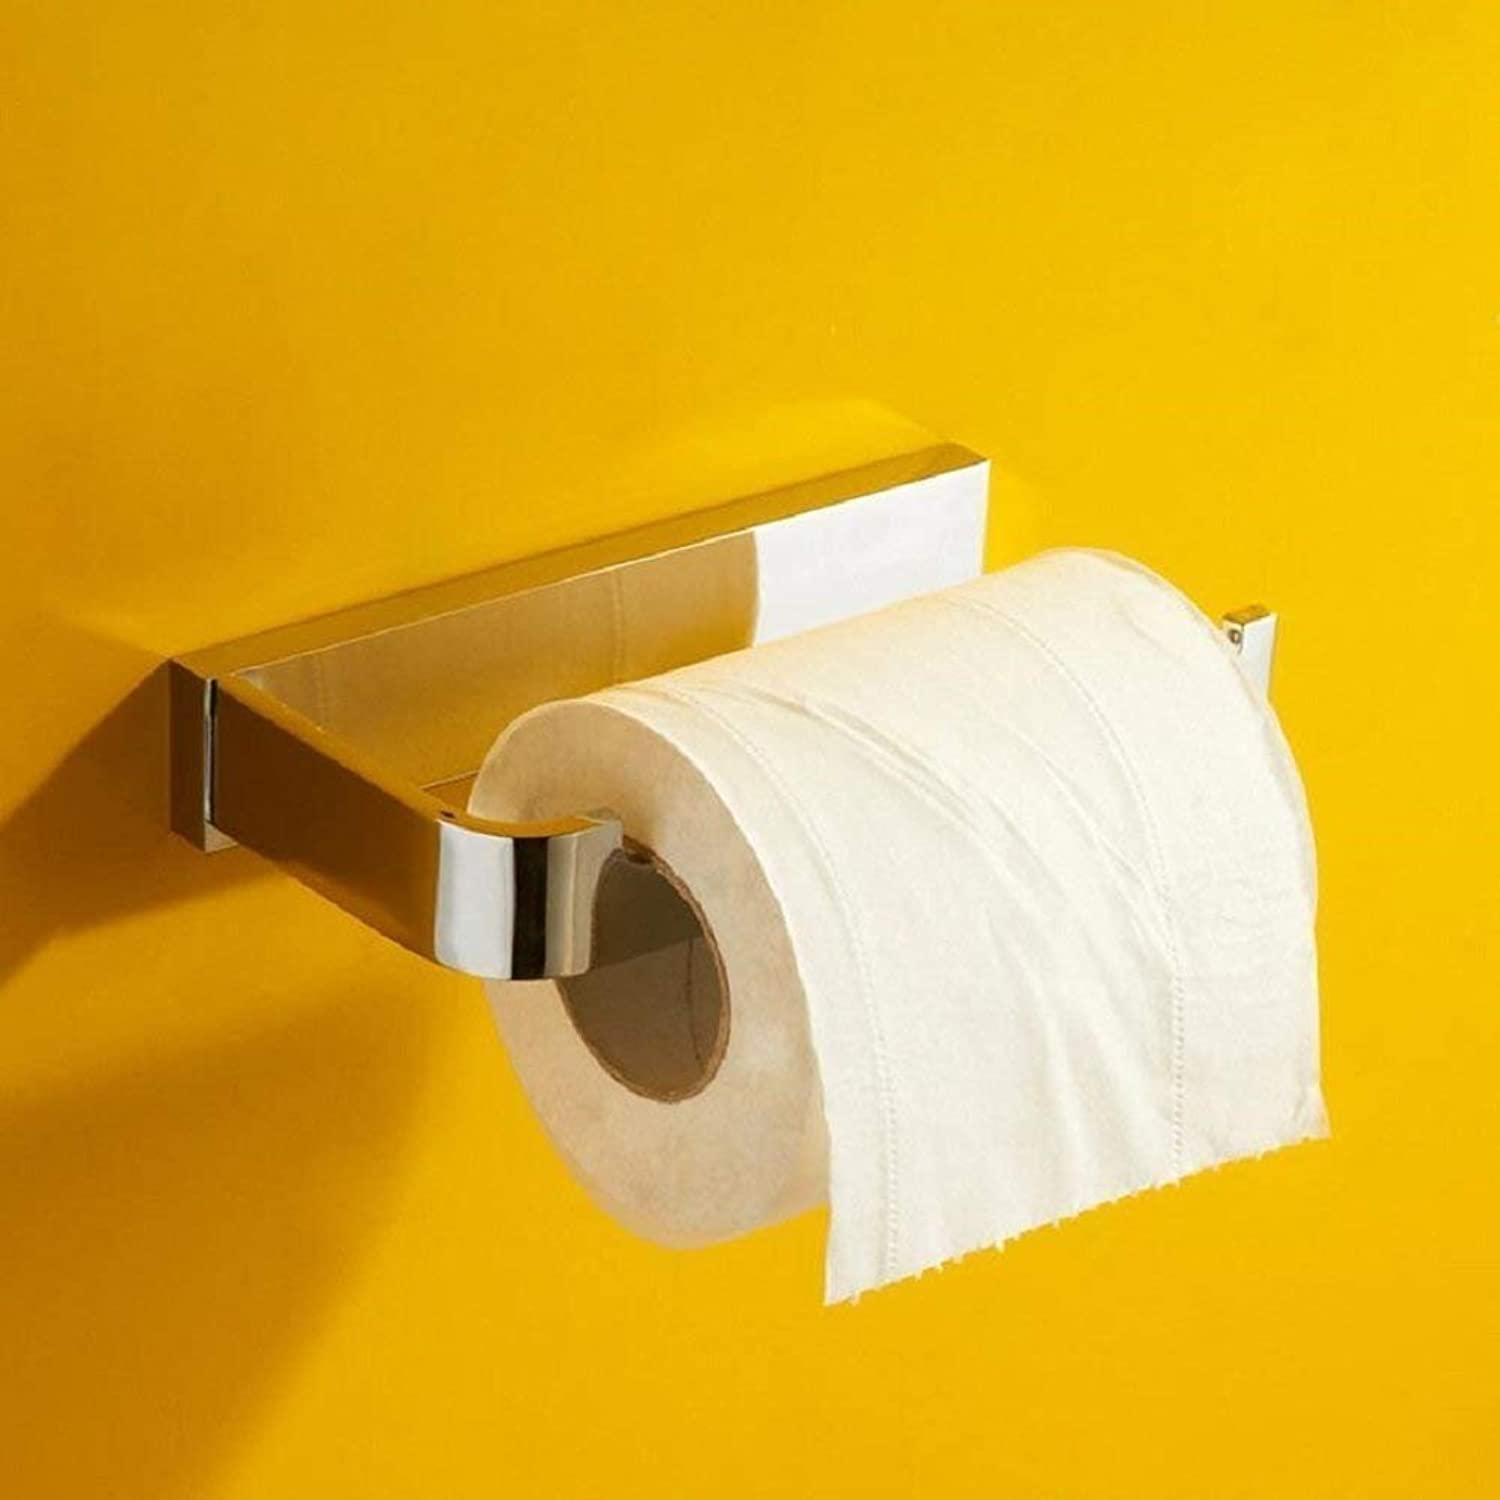 The Copper is',Paper Holder Paper Holder WC Bathroom,Easy Inssizetion and Resistant to Corrosion of Paper Door-Roll,Silver